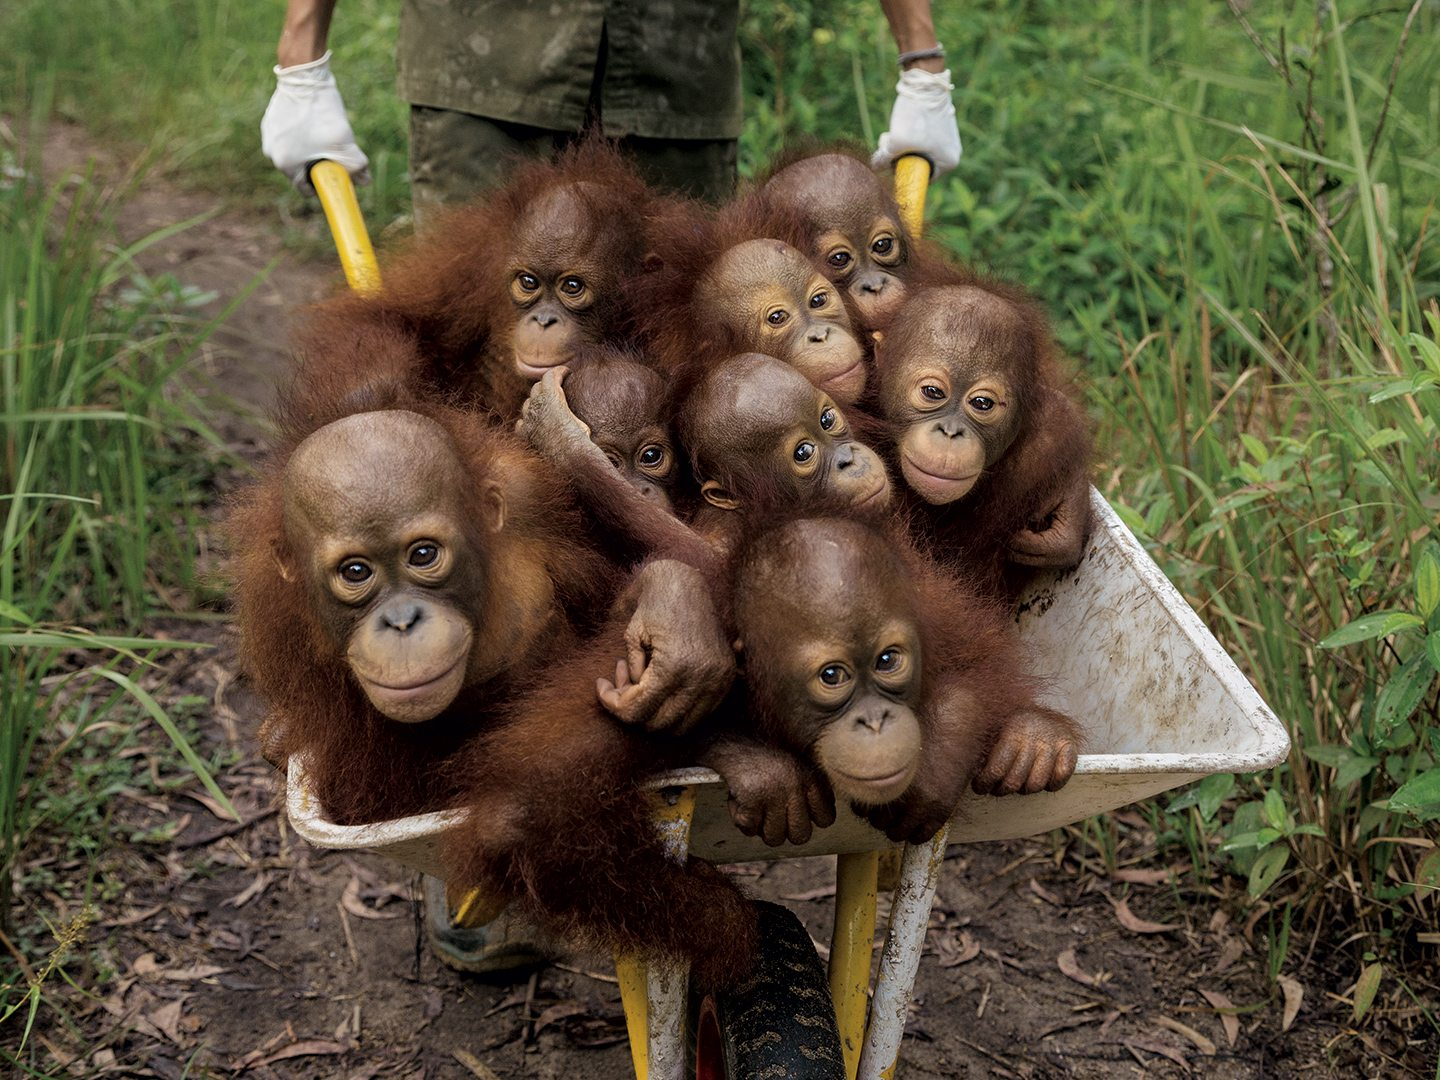 The Dance of Coexistence: The Humans and Orangutans of Indonesian Borneo 5